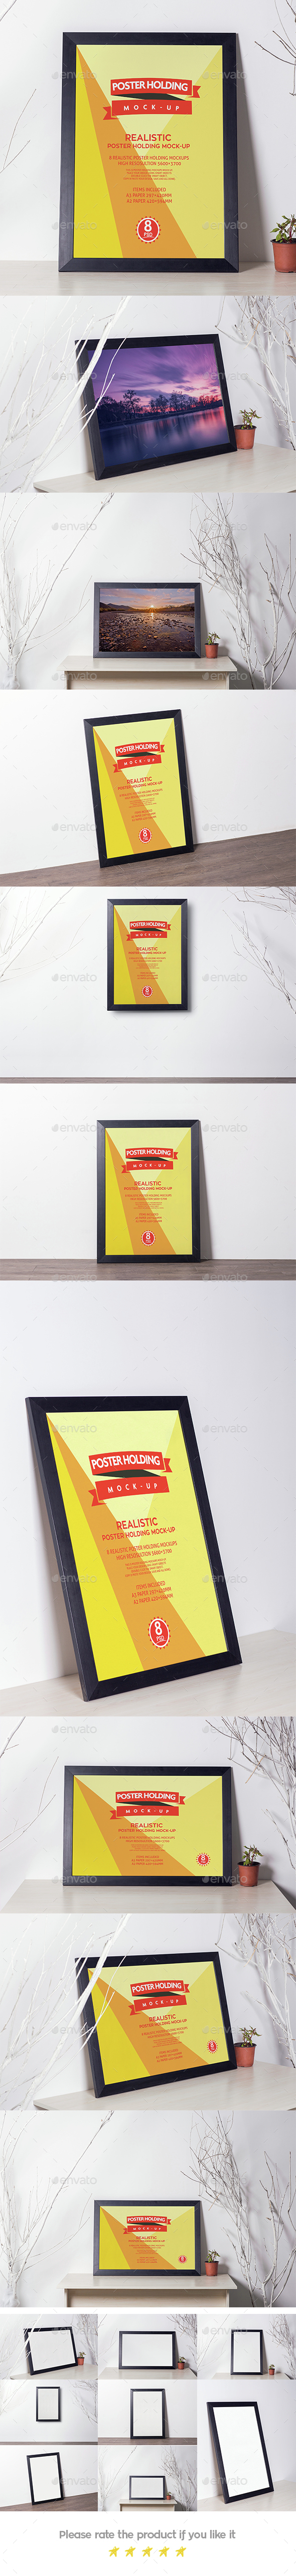 Realistic Poster Holding Mock-up V.2 - Posters Print